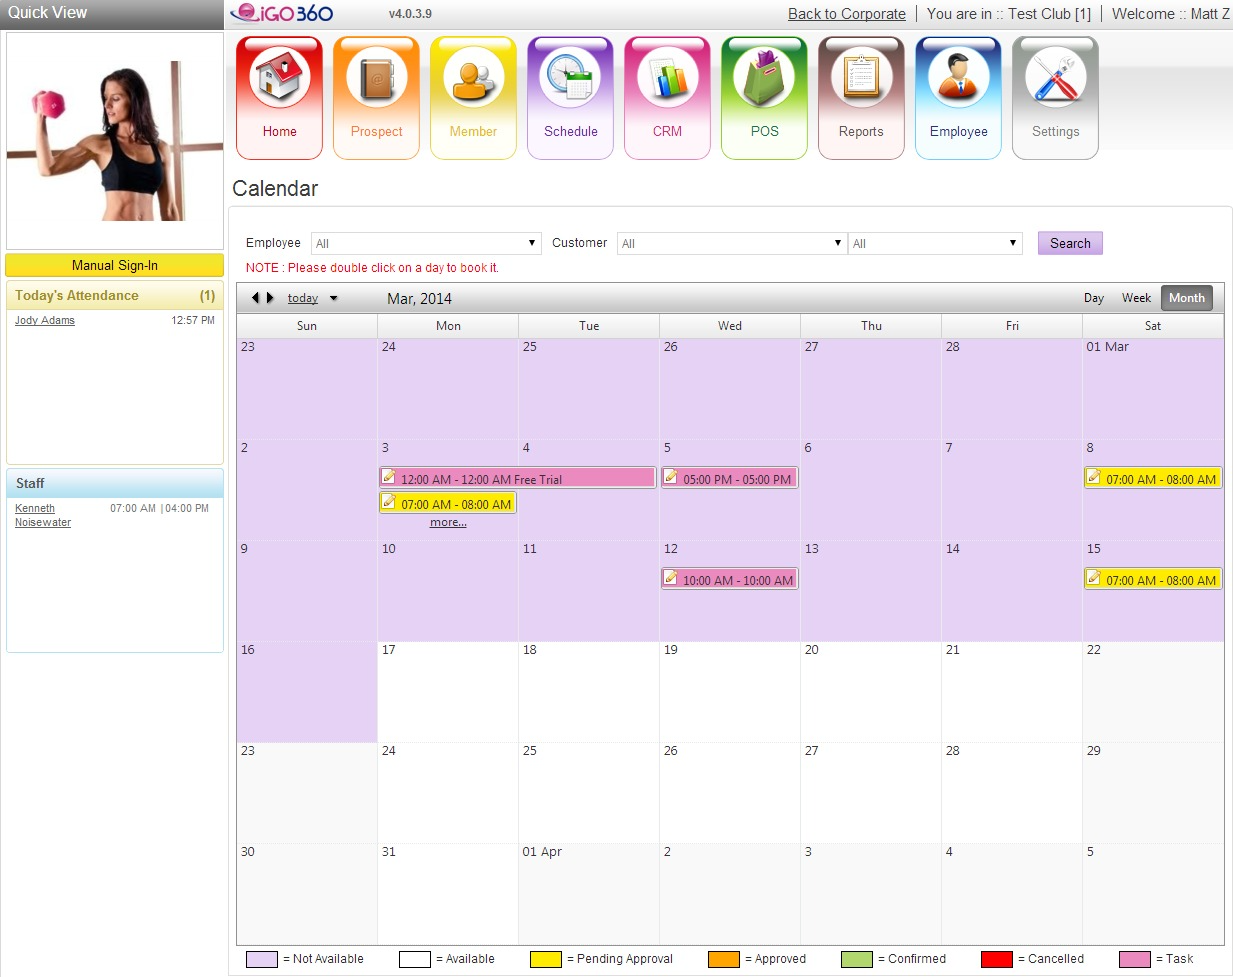 iGo Figure's calendar displays events differently based on whether they are pending approval, approved, or confirmed